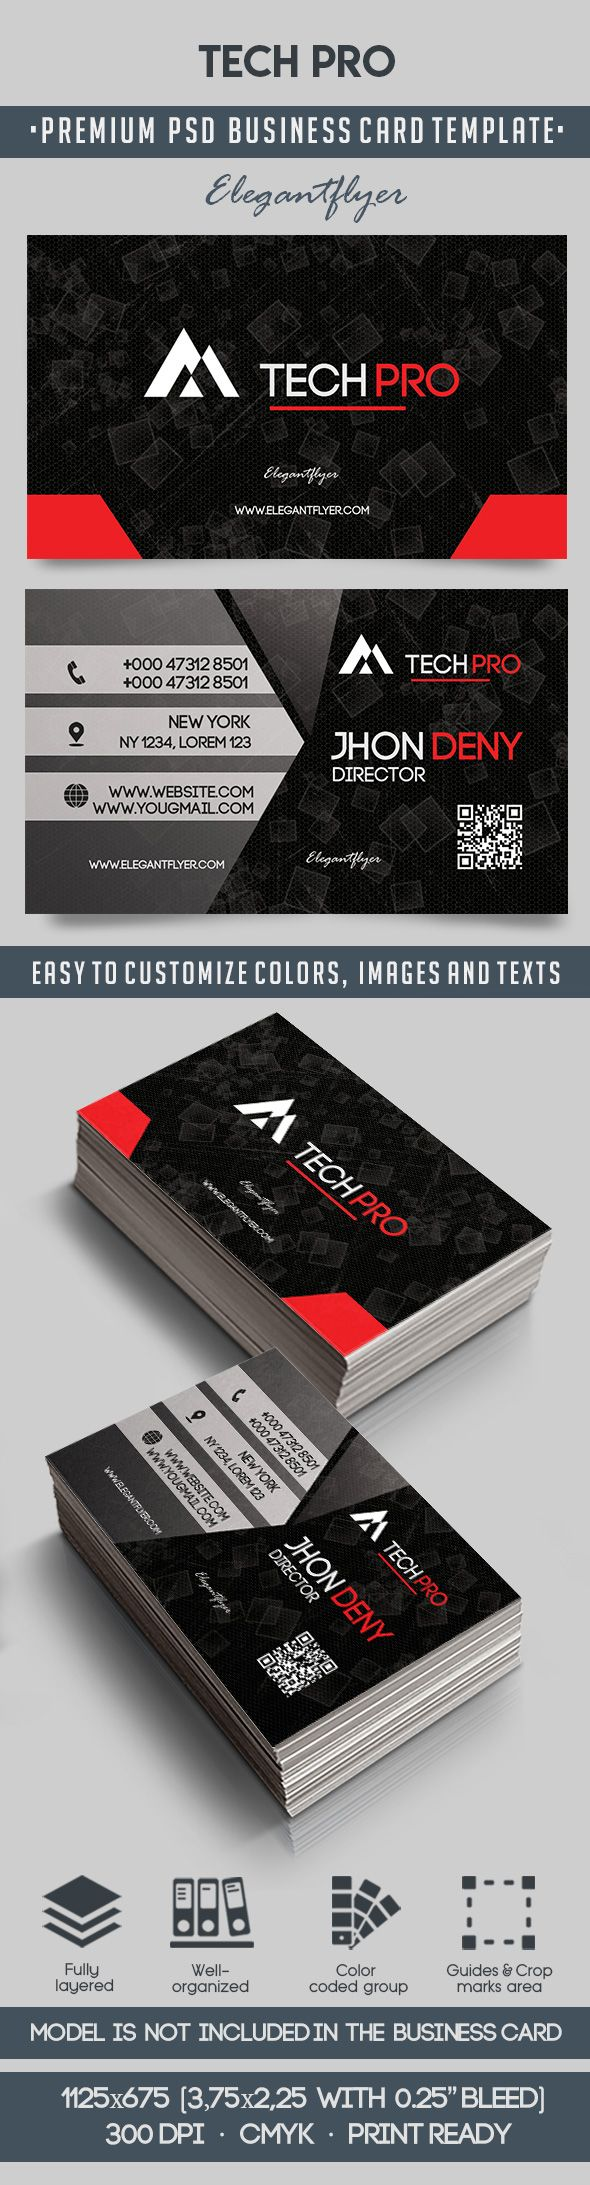 Tech Pro – Premium Business Card Templates PSD